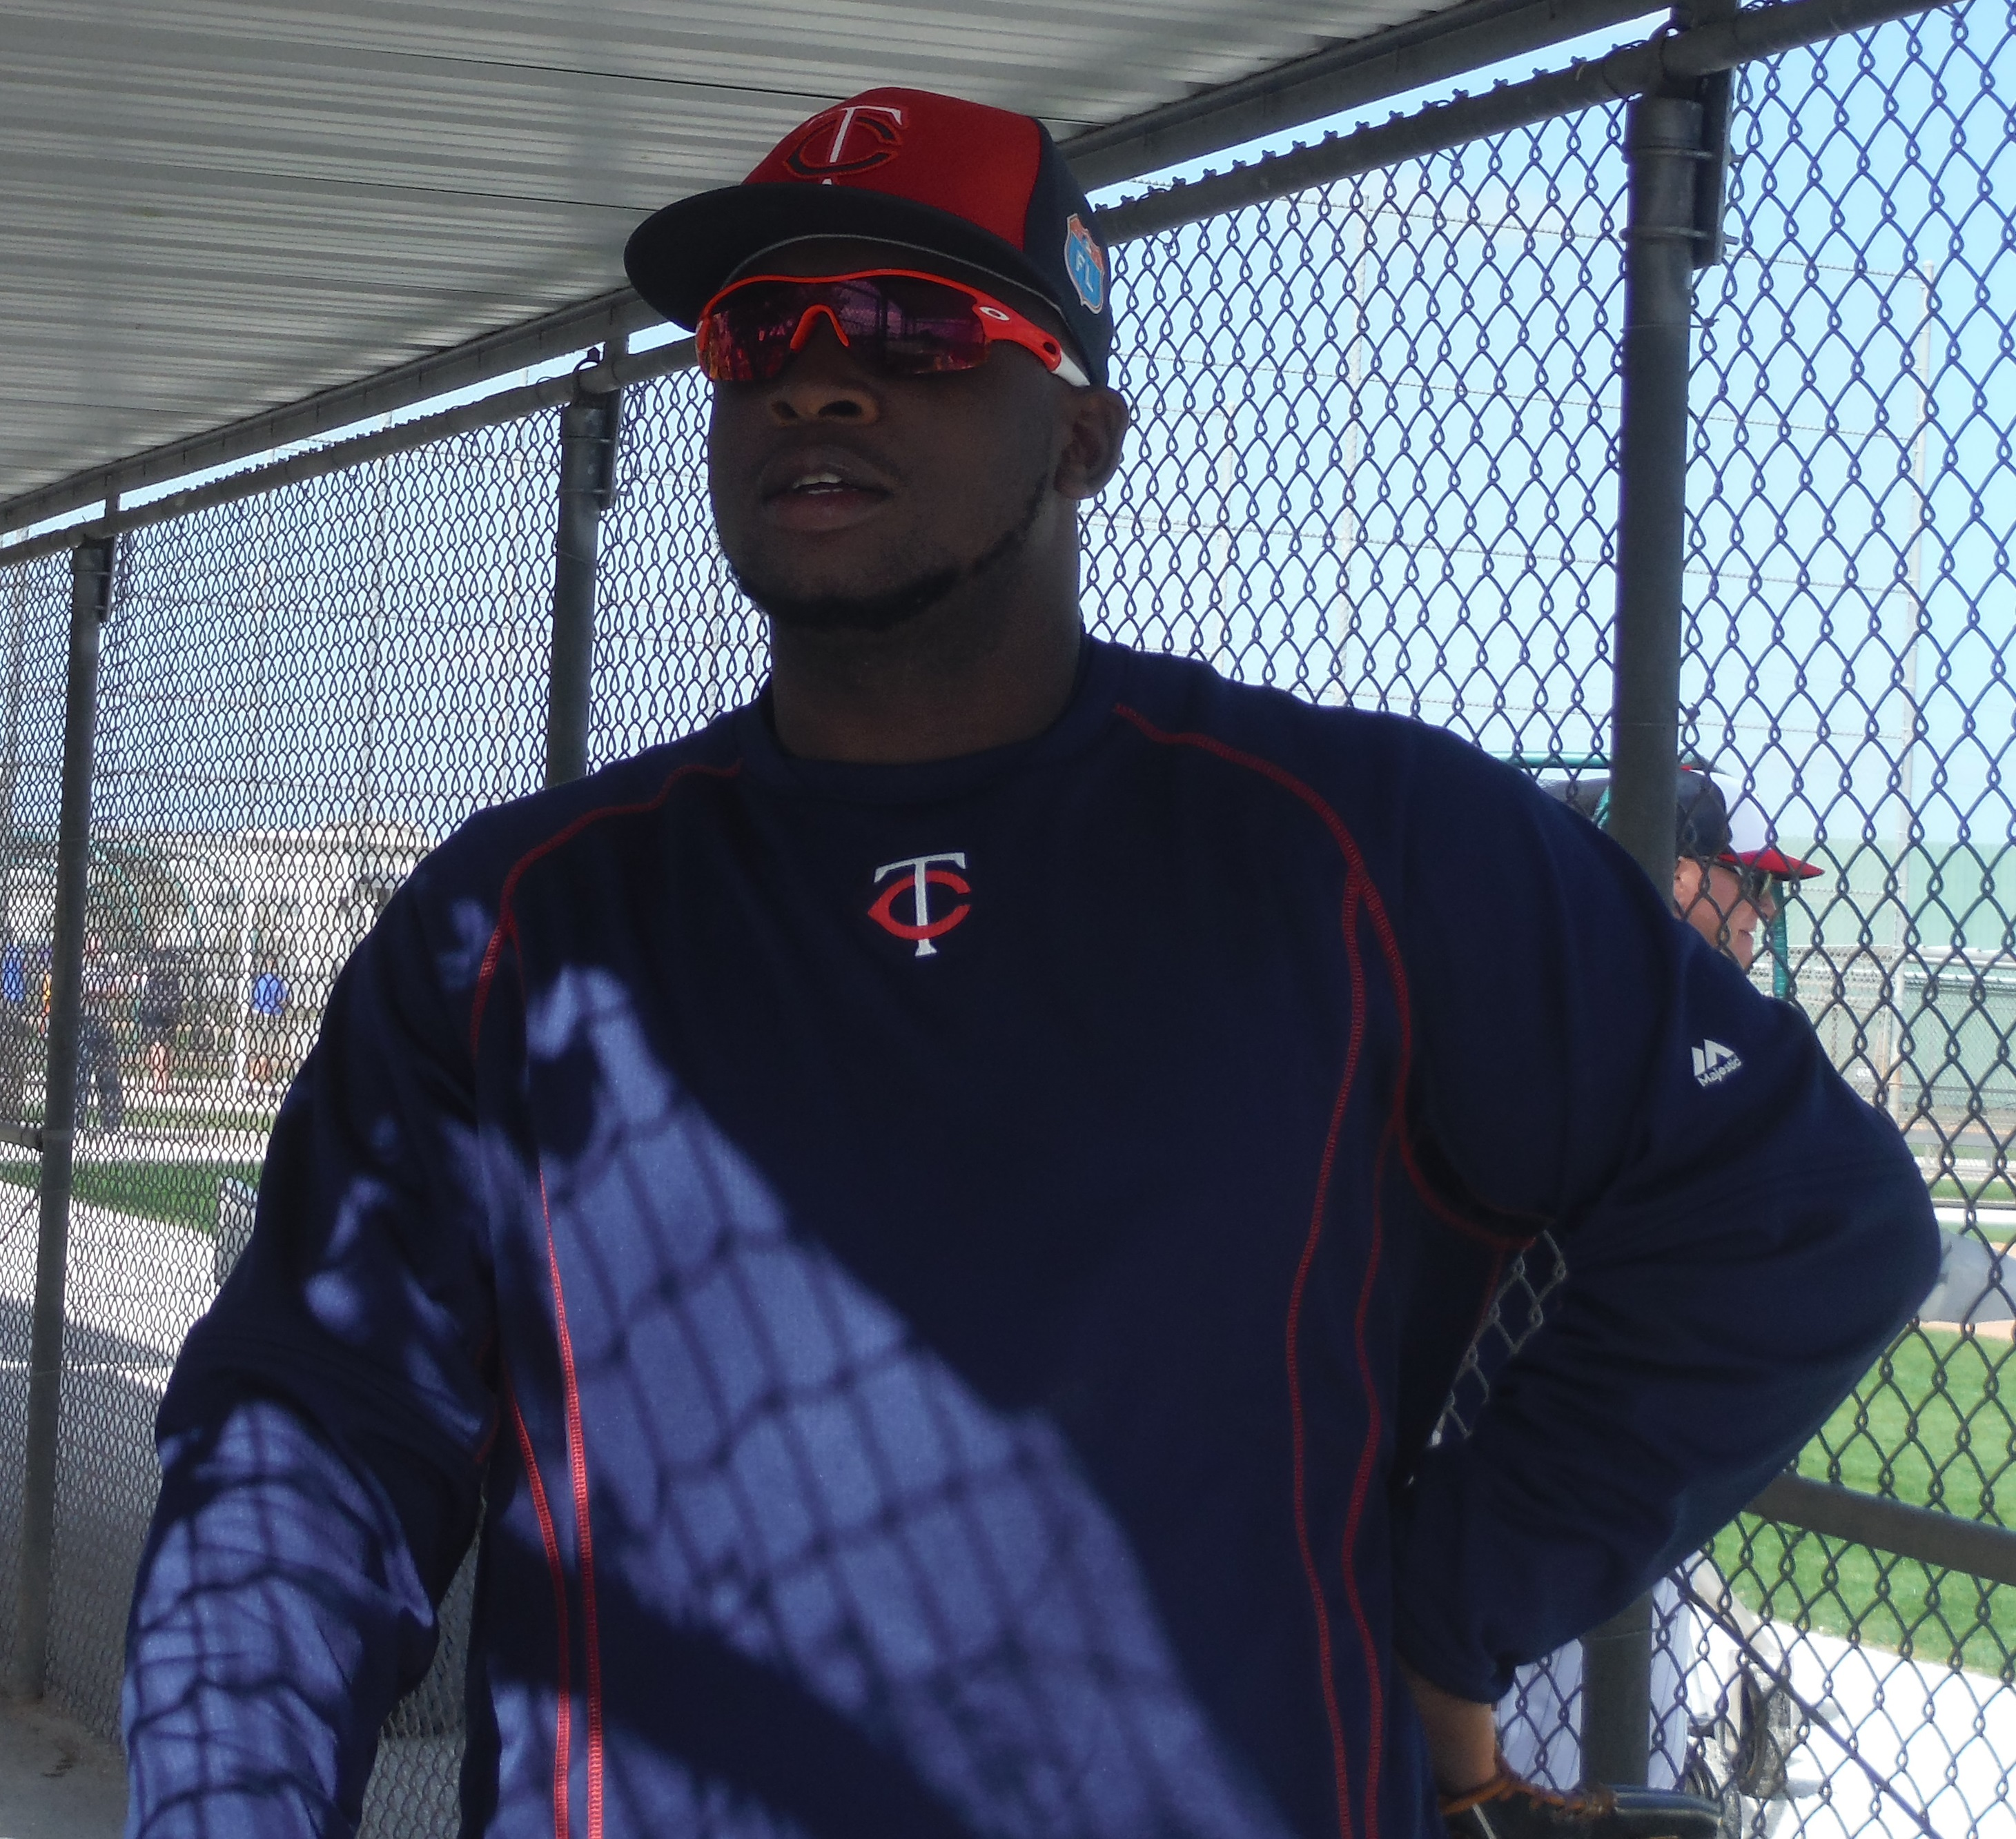 Through the Fence: A Sano Day 2/19/16